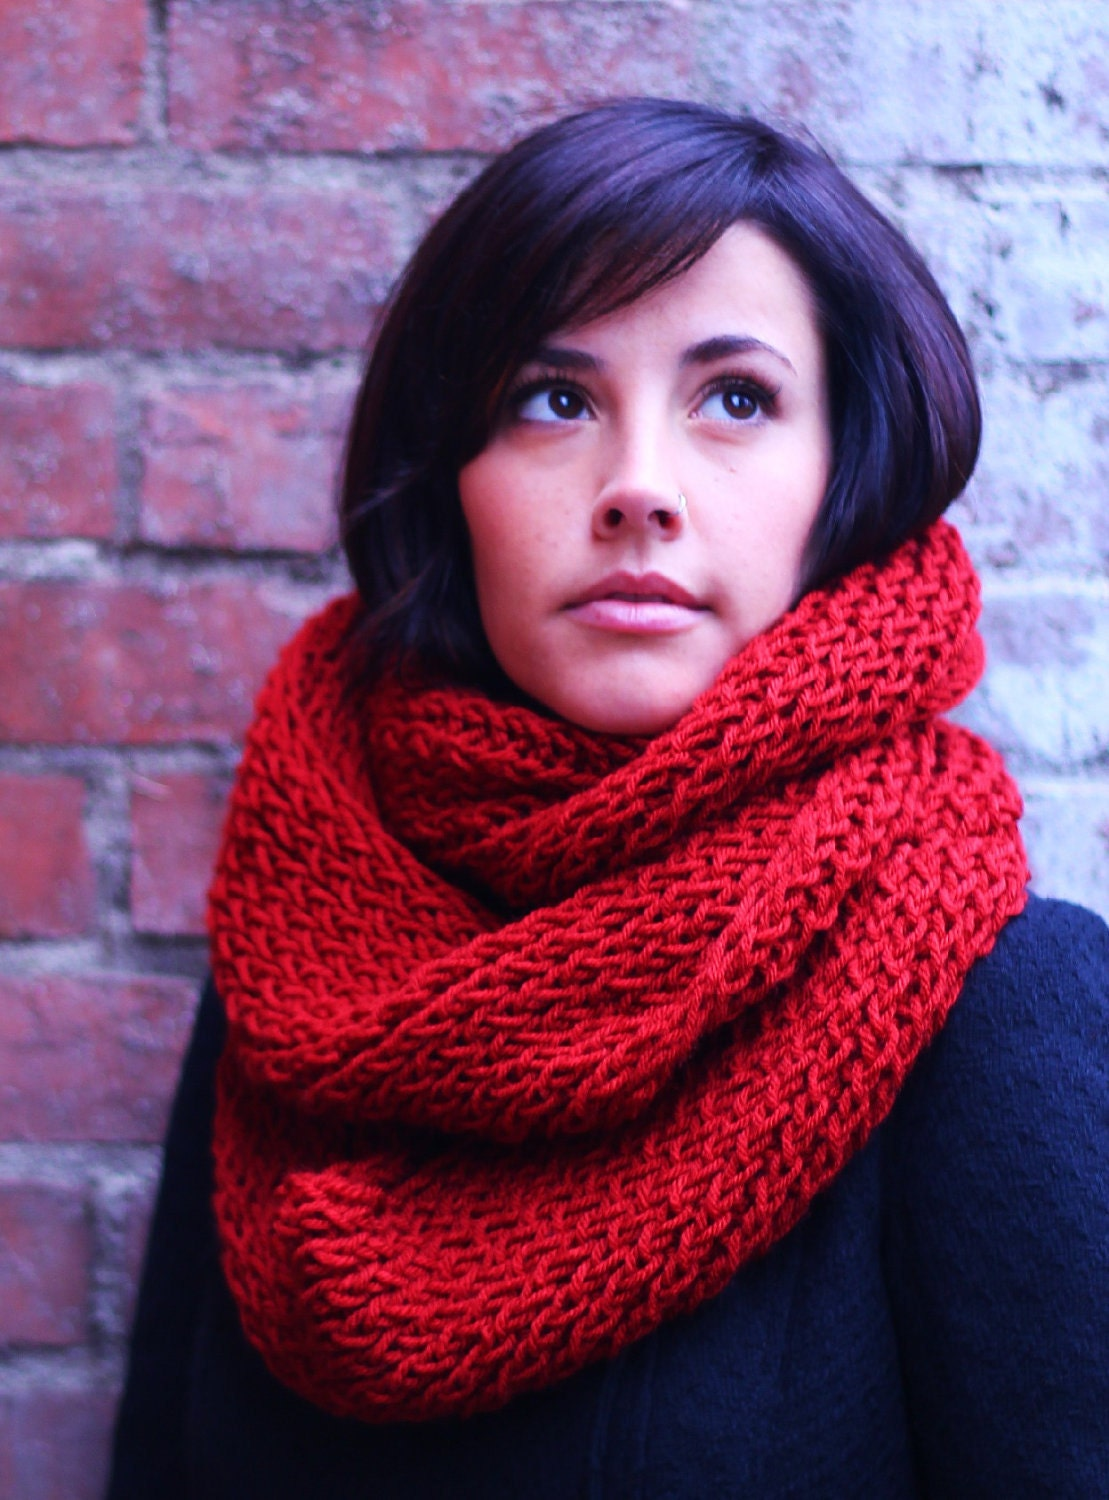 Product - Marino's Cable Knit Infinity Scarves for Women, Winter Infinity Circle Scarf Wrap. Product Image. Price $ Product Title. Sassy Scarves Women's Color Block Thick and Warm Knitted Infinity Scarf (Red/Burgundy) Product - Sassy Scarves Womens Cold Weather Infinity Neck Warmer Muffler Scarf (Burgundy) Clearance. Product.